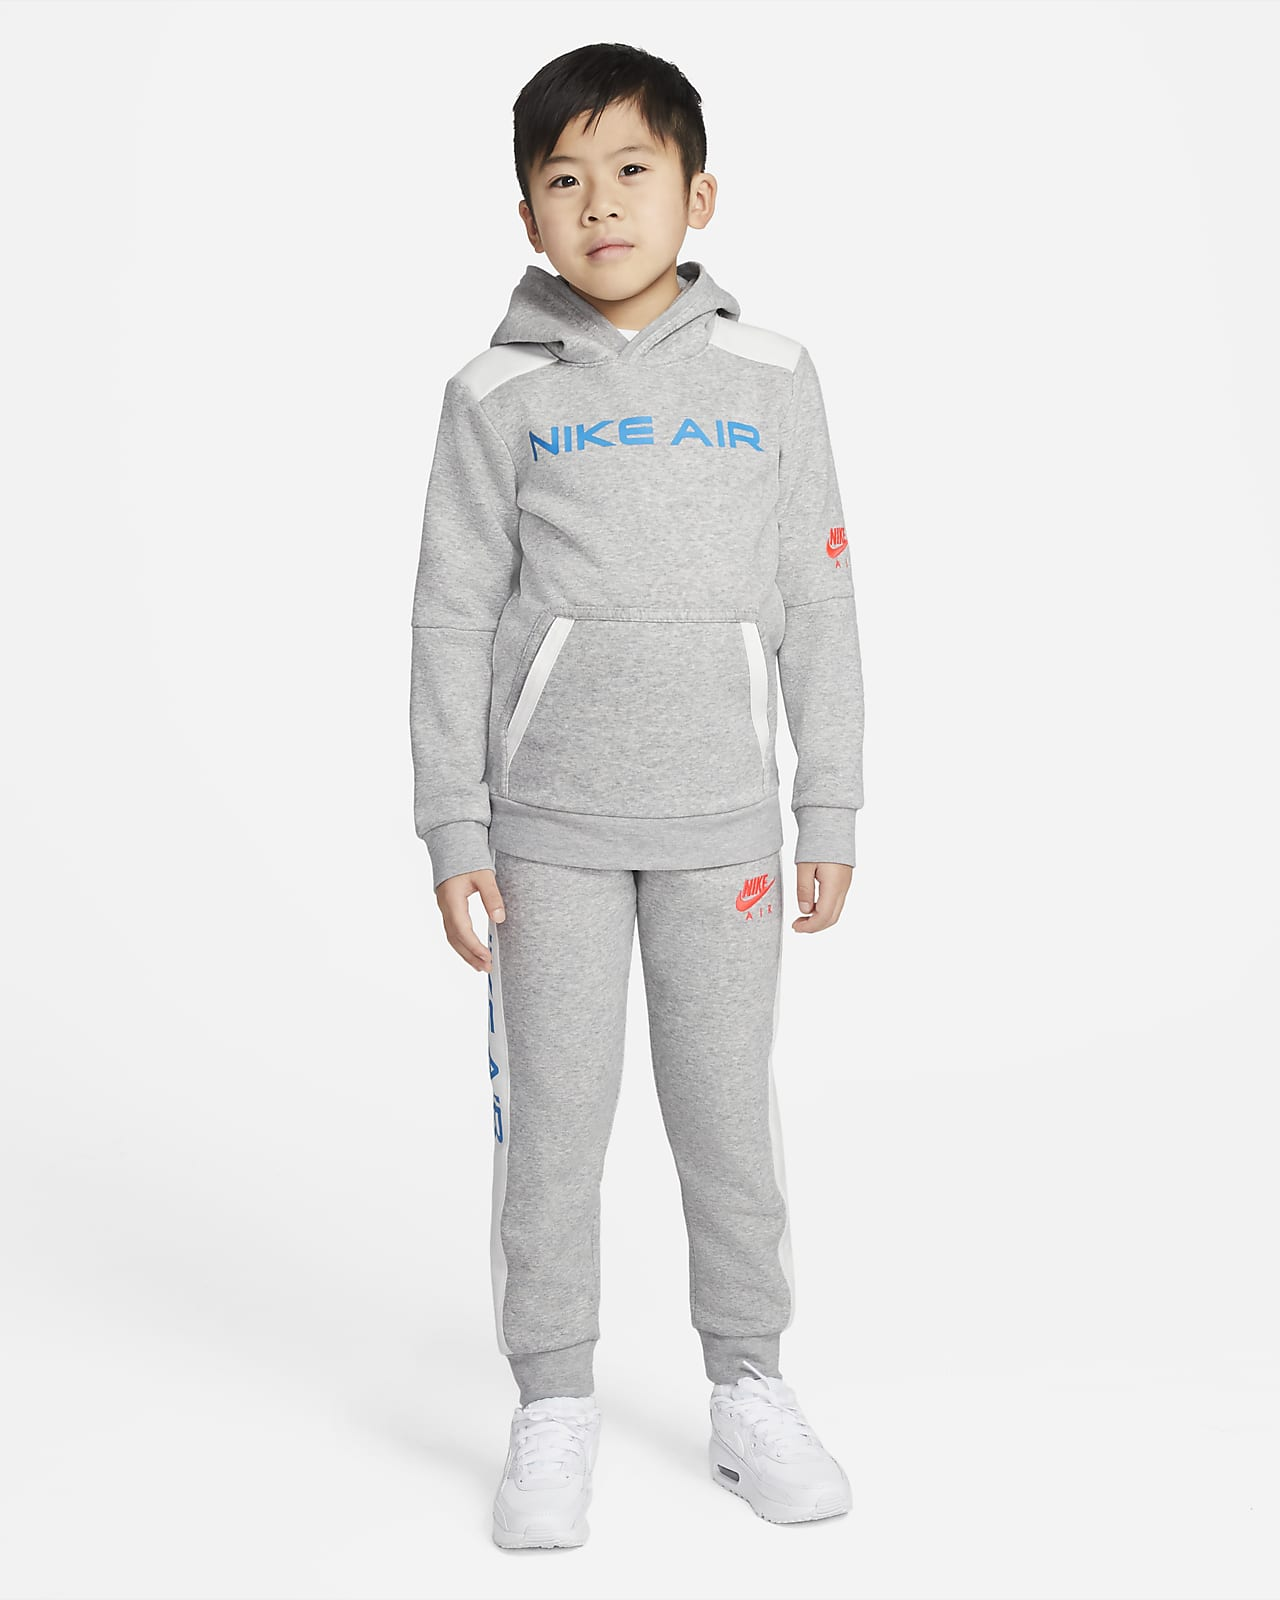 Nike Air Little Kids' Hoodie and Joggers Set